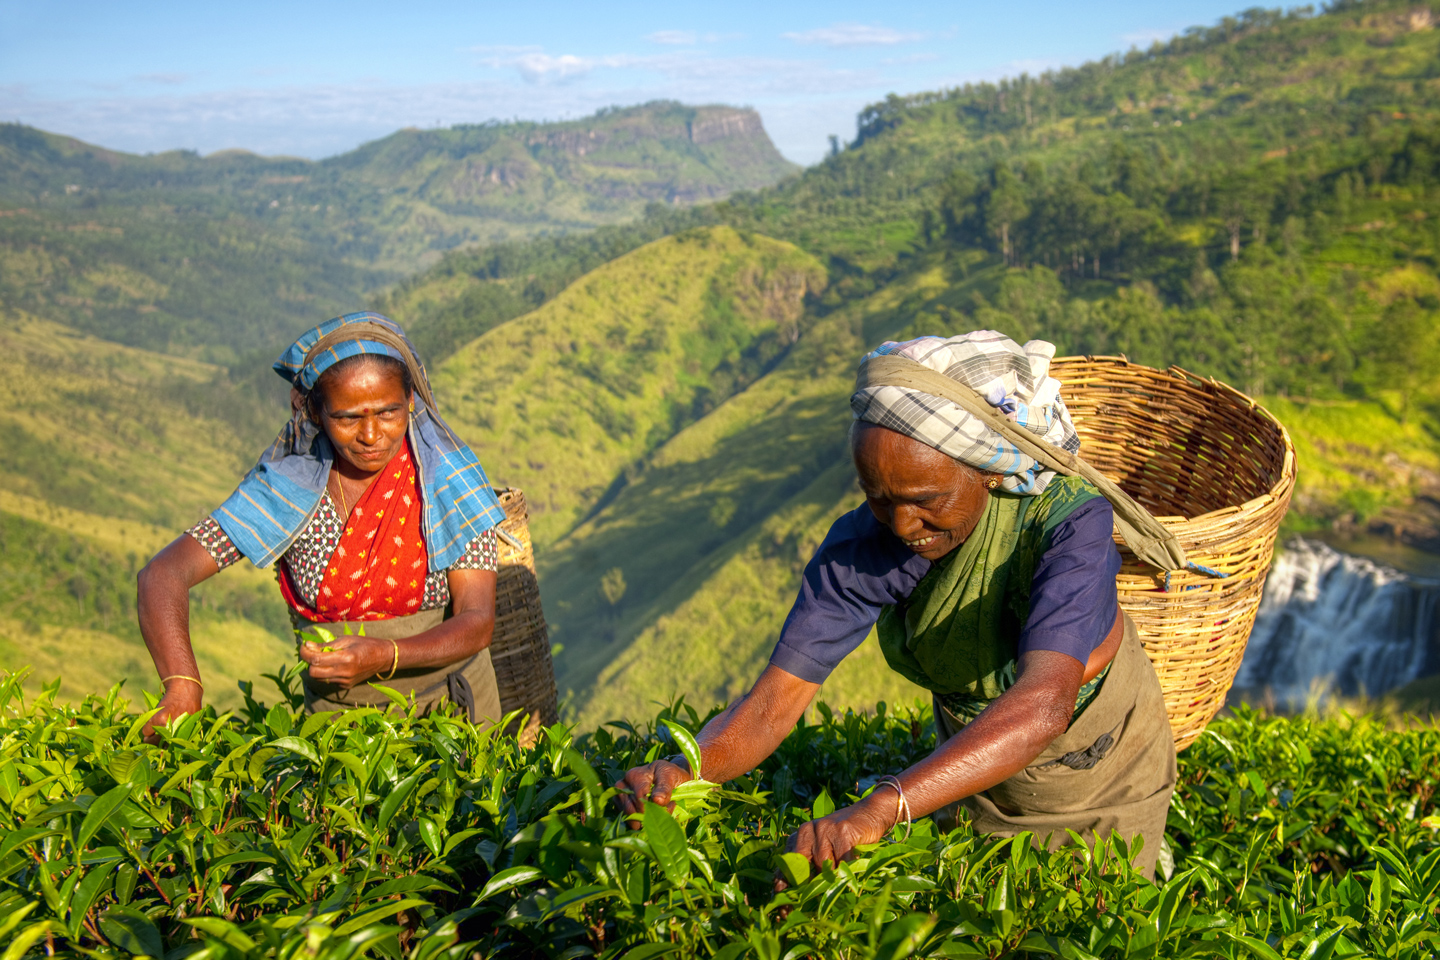 Female Tea Pickers in Plantage, Sri Lanka